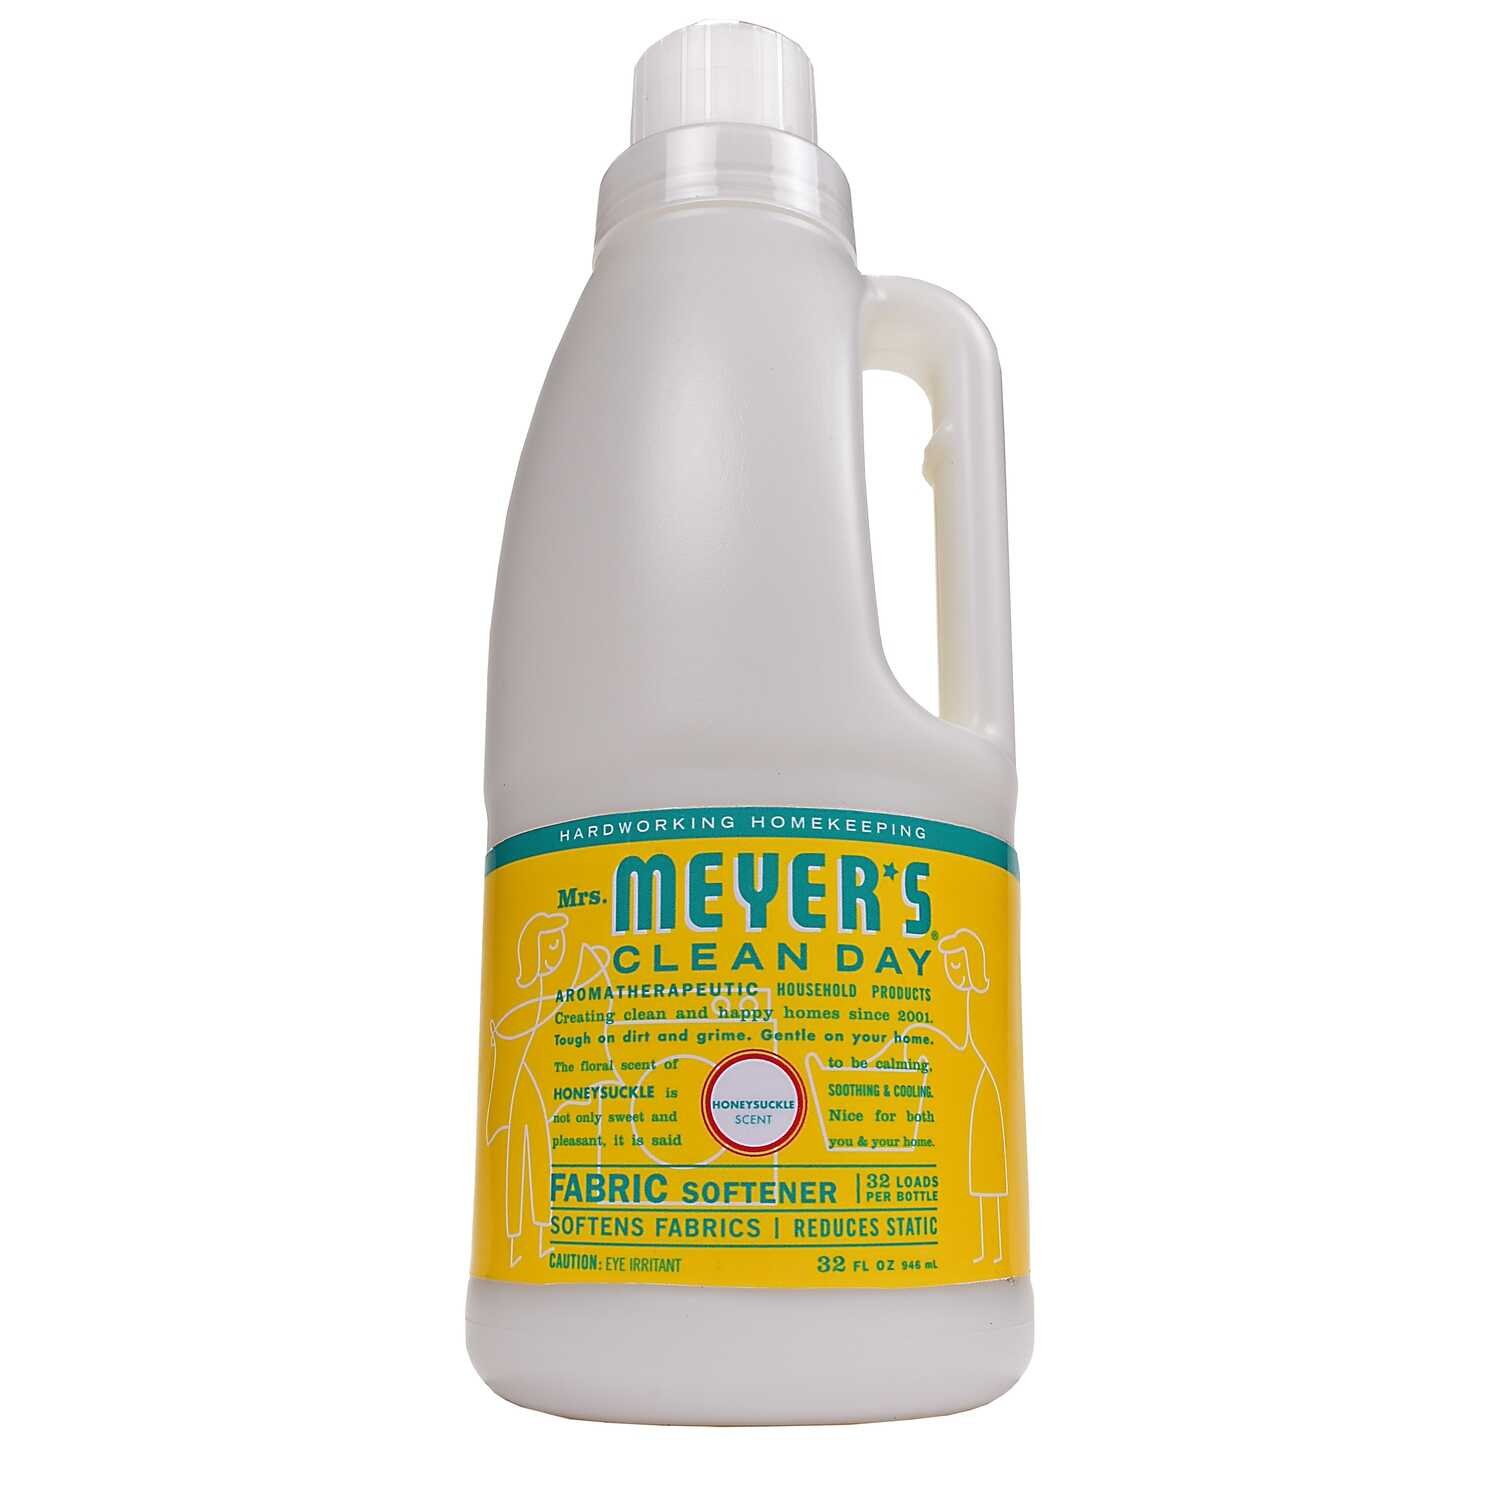 Mrs. Meyer's  Clean Day  Honeysuckle Scent Fabric Softener  Liquid  32 oz. 1 pk